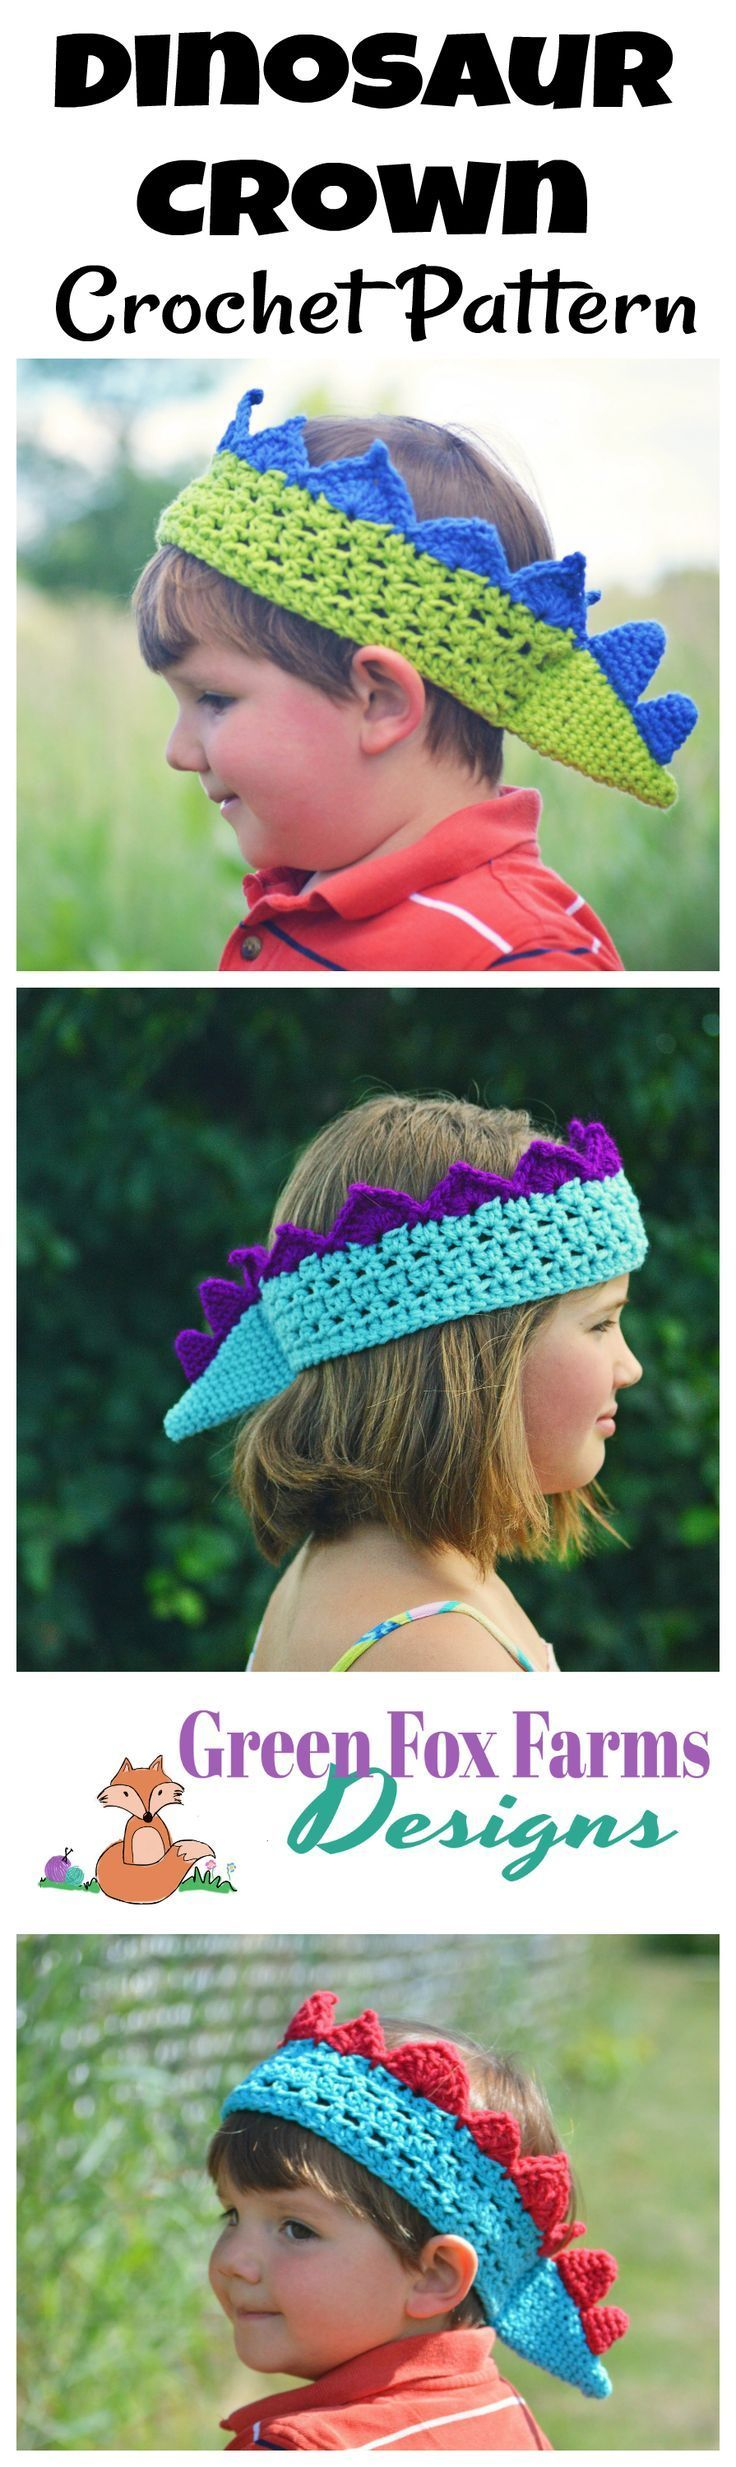 Crochet Dinosaur Crown Pattern Release! #crownscrocheted Crochet Dinosaur Crown - Dinosaur Birthday - DIY Dino Party - Party Crown - Crochet Pattern - www.greenfoxfarmsdesigns.com #crownscrocheted